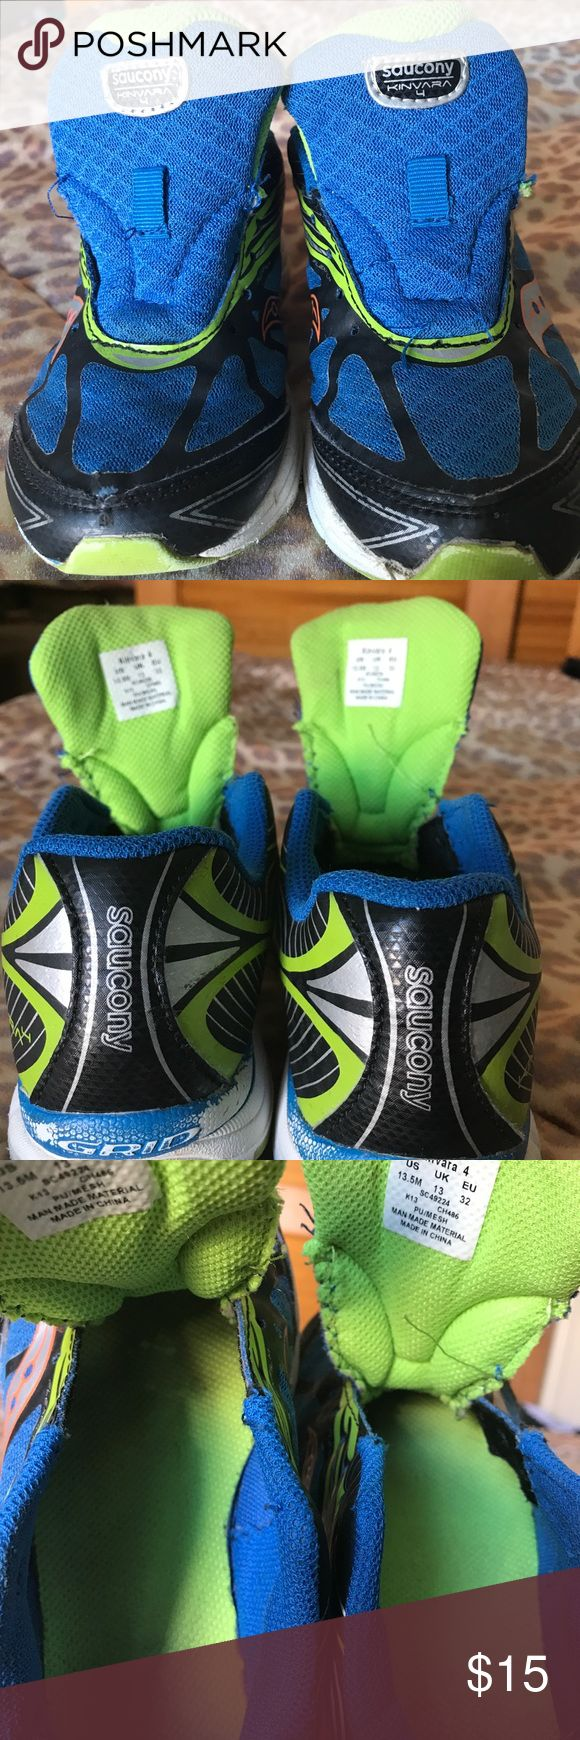 Saucony Kinvara 4 Boys Shoes Size 13.5m Saucony Boys shoes with no laces size 13.5, good used condition. Shows wear on bottom rails where blue has been scuffed off but still lots of life. Saucony Shoes Sneakers